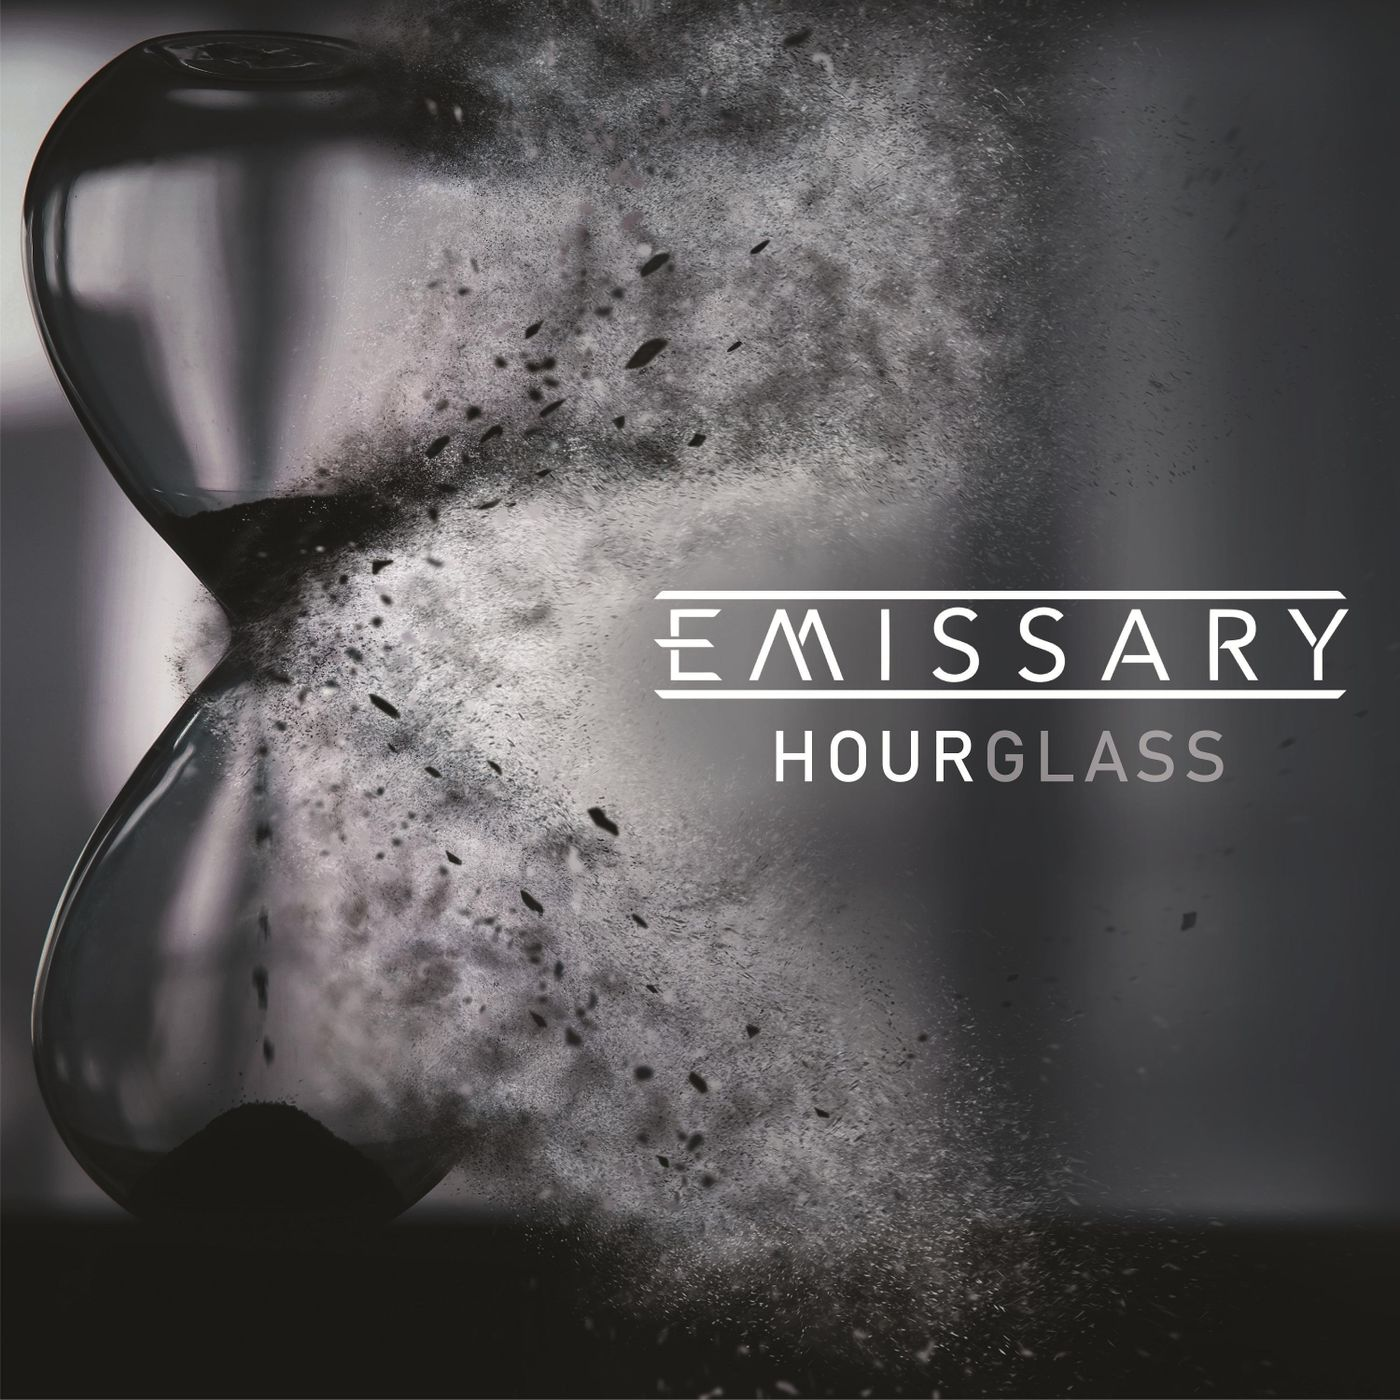 Emissary - Hourglass [single] (2019)